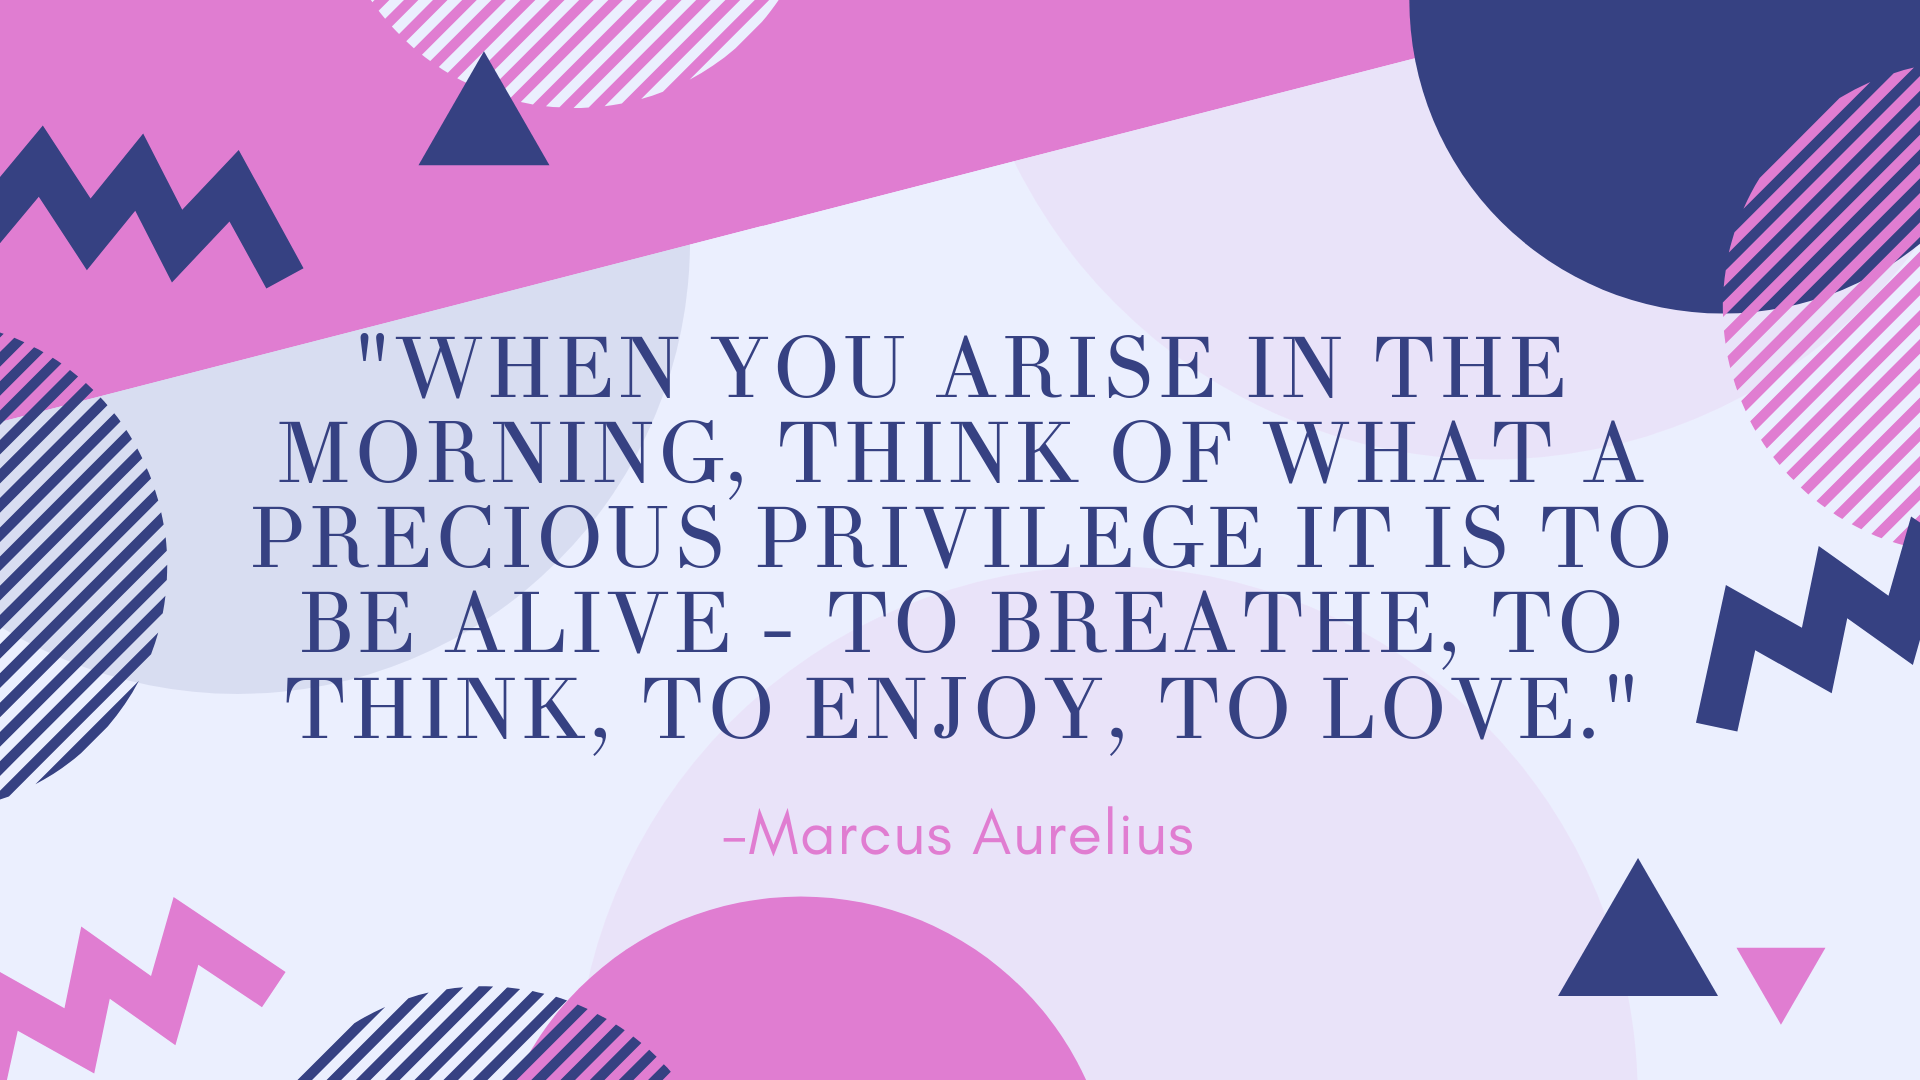 %22WHEN-YOU-ARISE-IN-THE-MORNING,-THINK-OF-WHAT-A-PRECIOUS-PRIVILEGE-IT-IS-TO-BE-ALIVE---TO-BREATHE,-TO-THINK,-TO-ENJOY,-TO-LOVE.%22.png